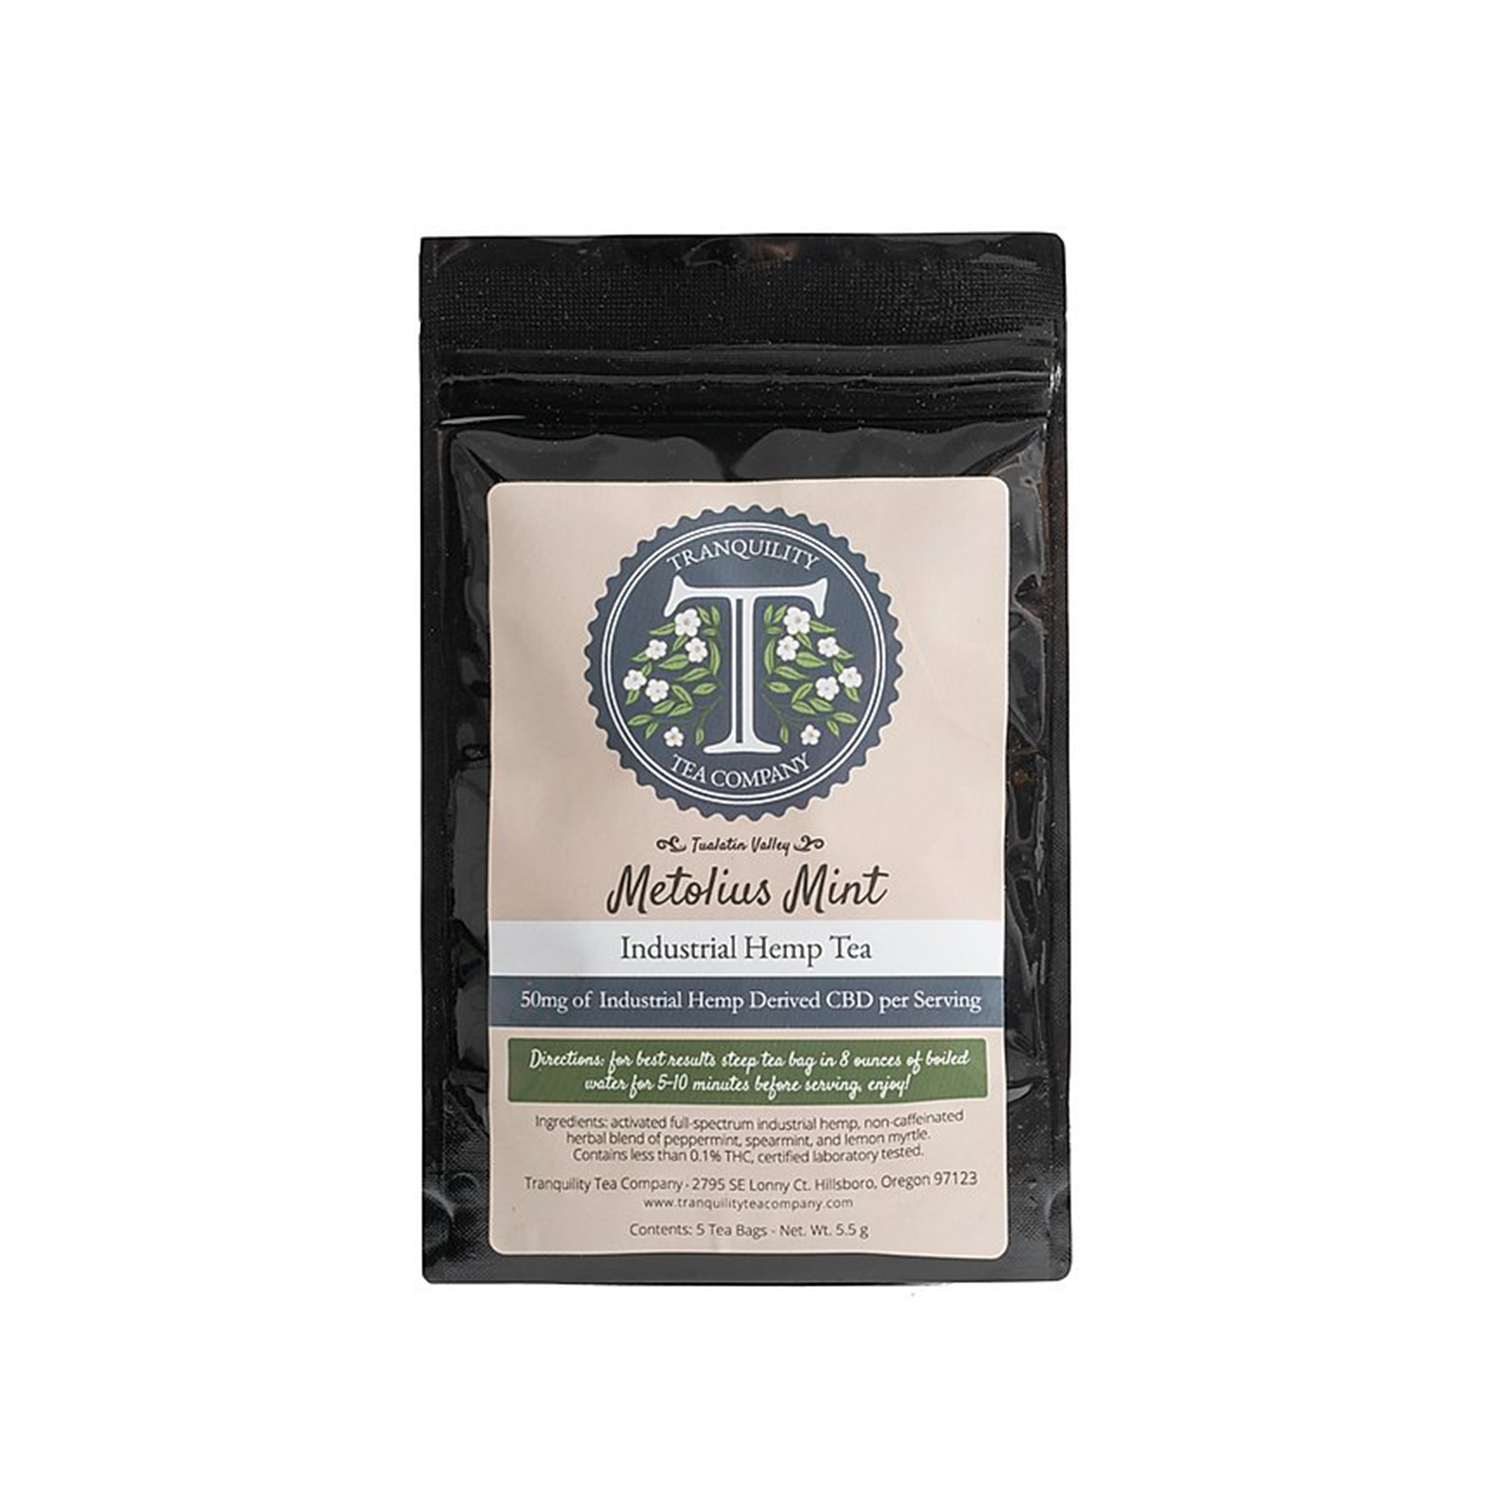 Tranquility Tea | Metolius Mint- 50mg Full Spectrum CBD